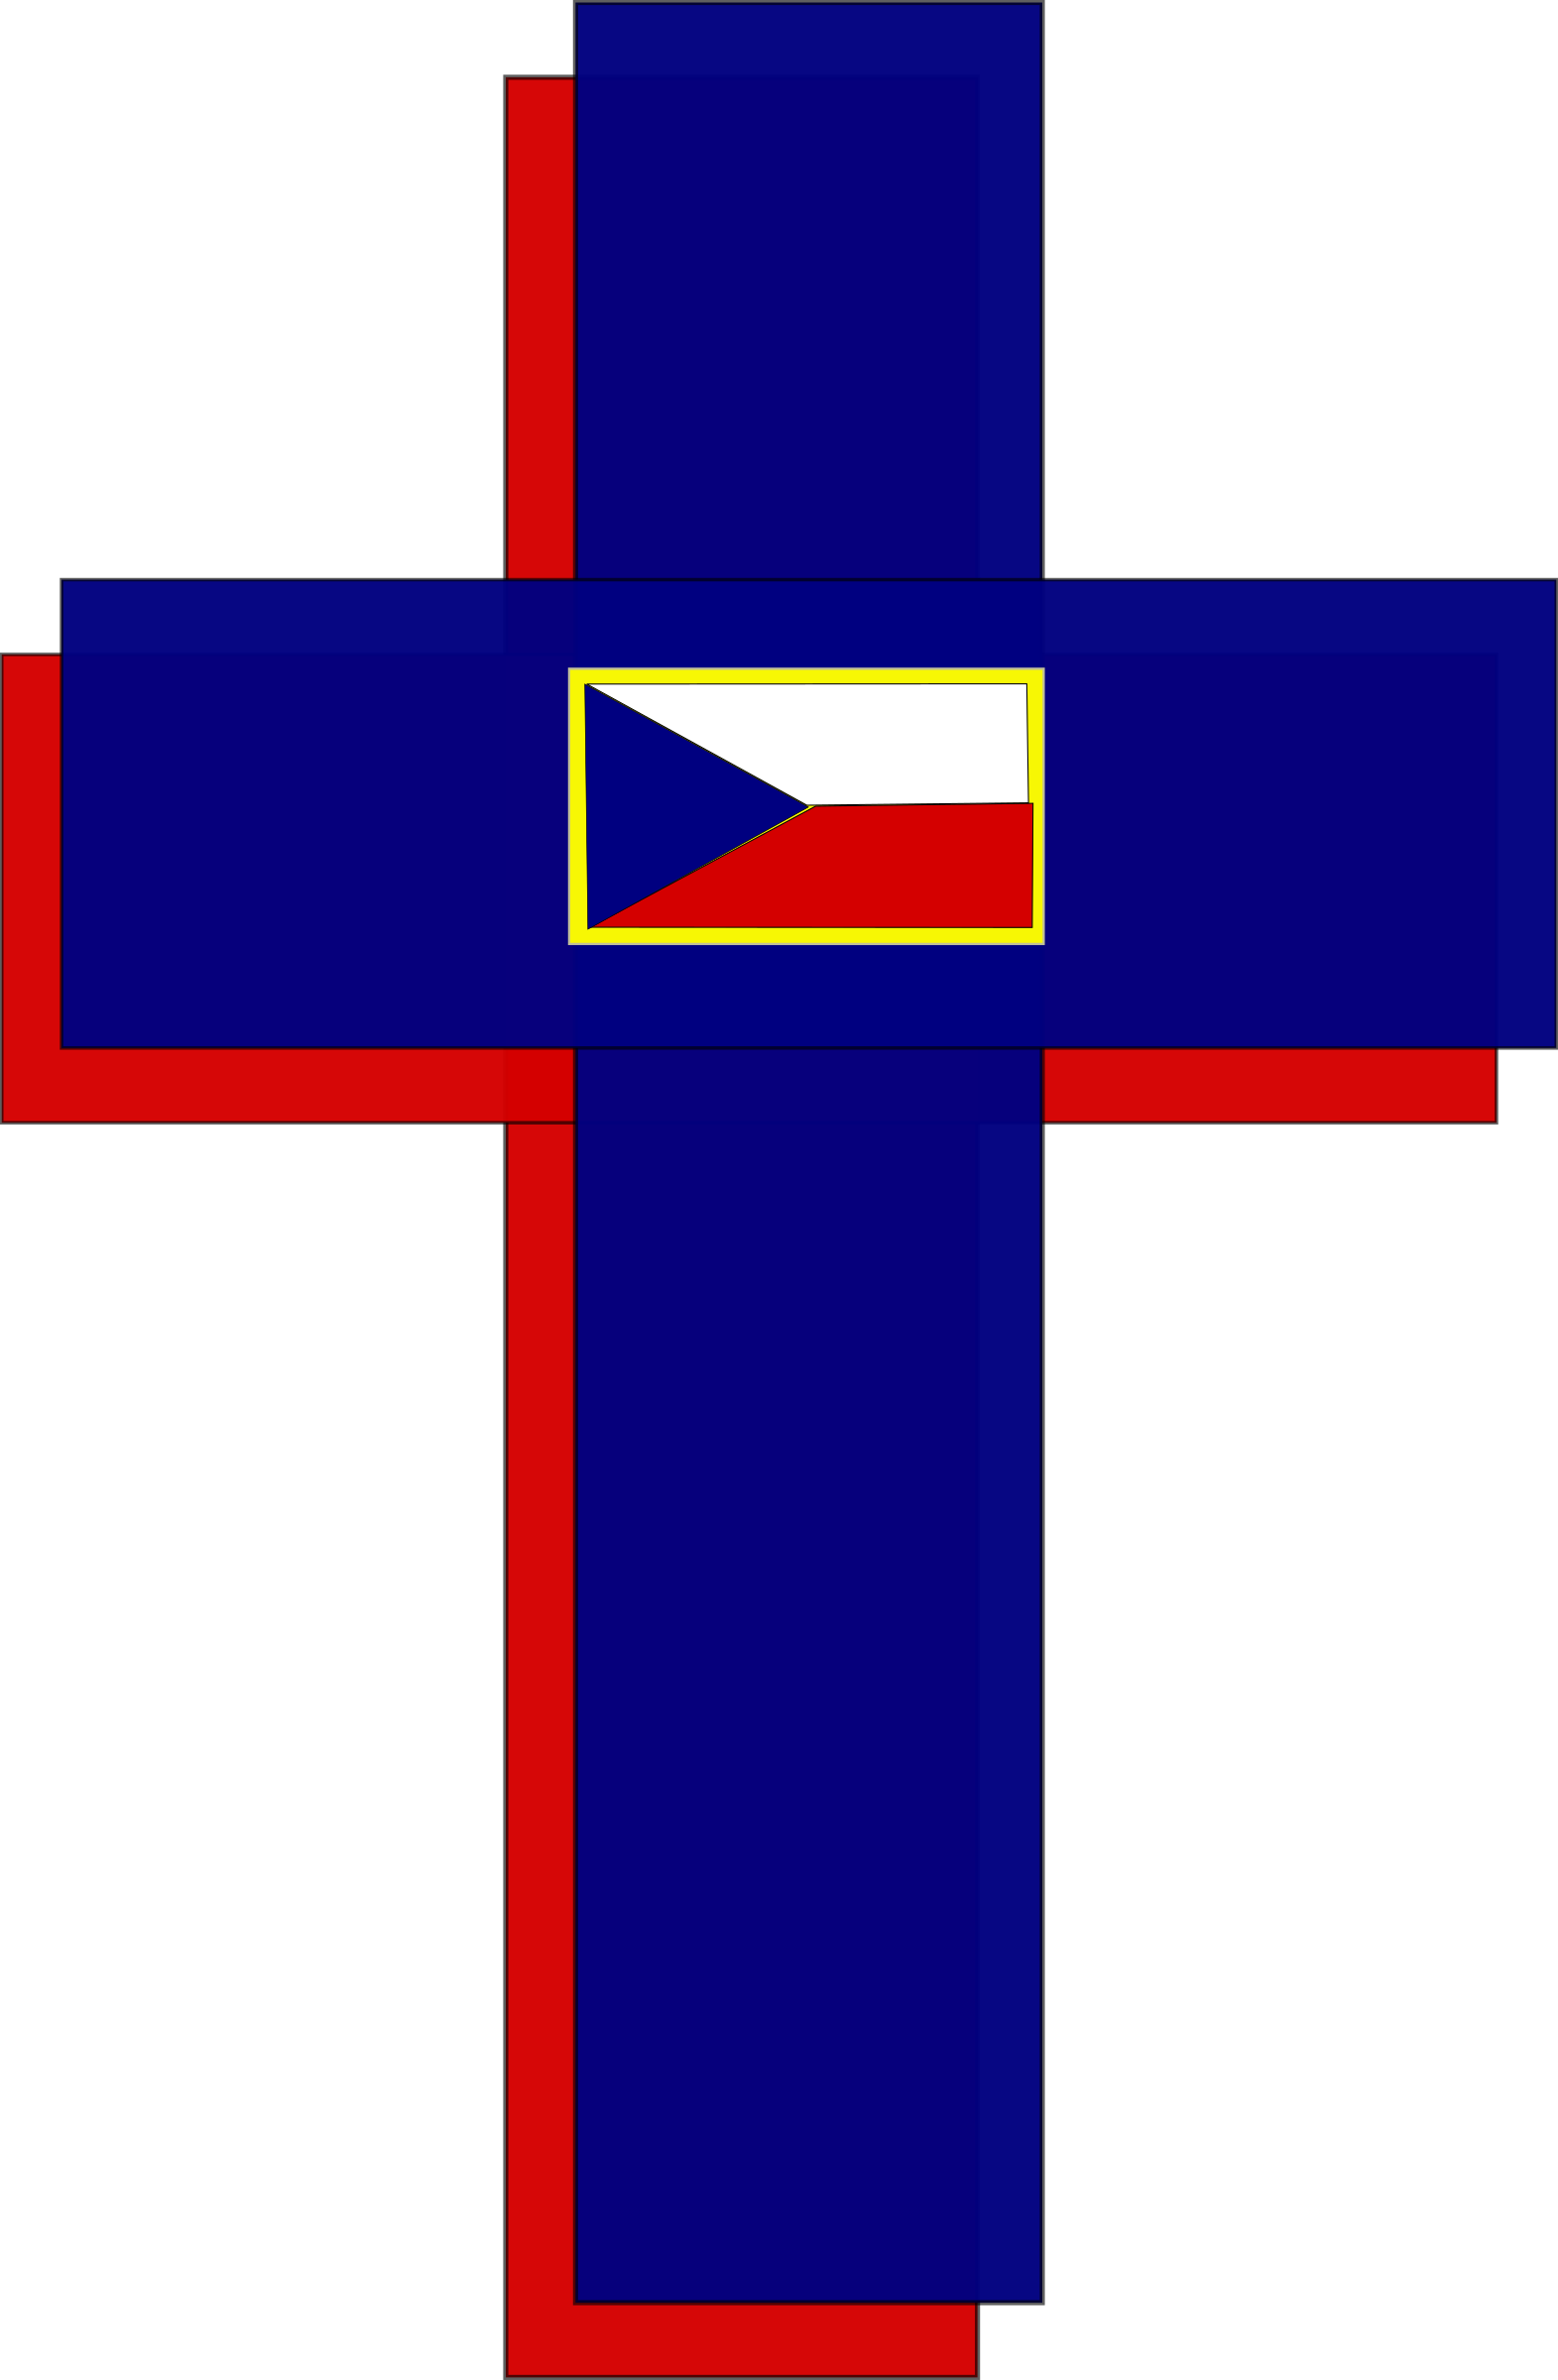 Cross and Czech Flag by wordtoall.org